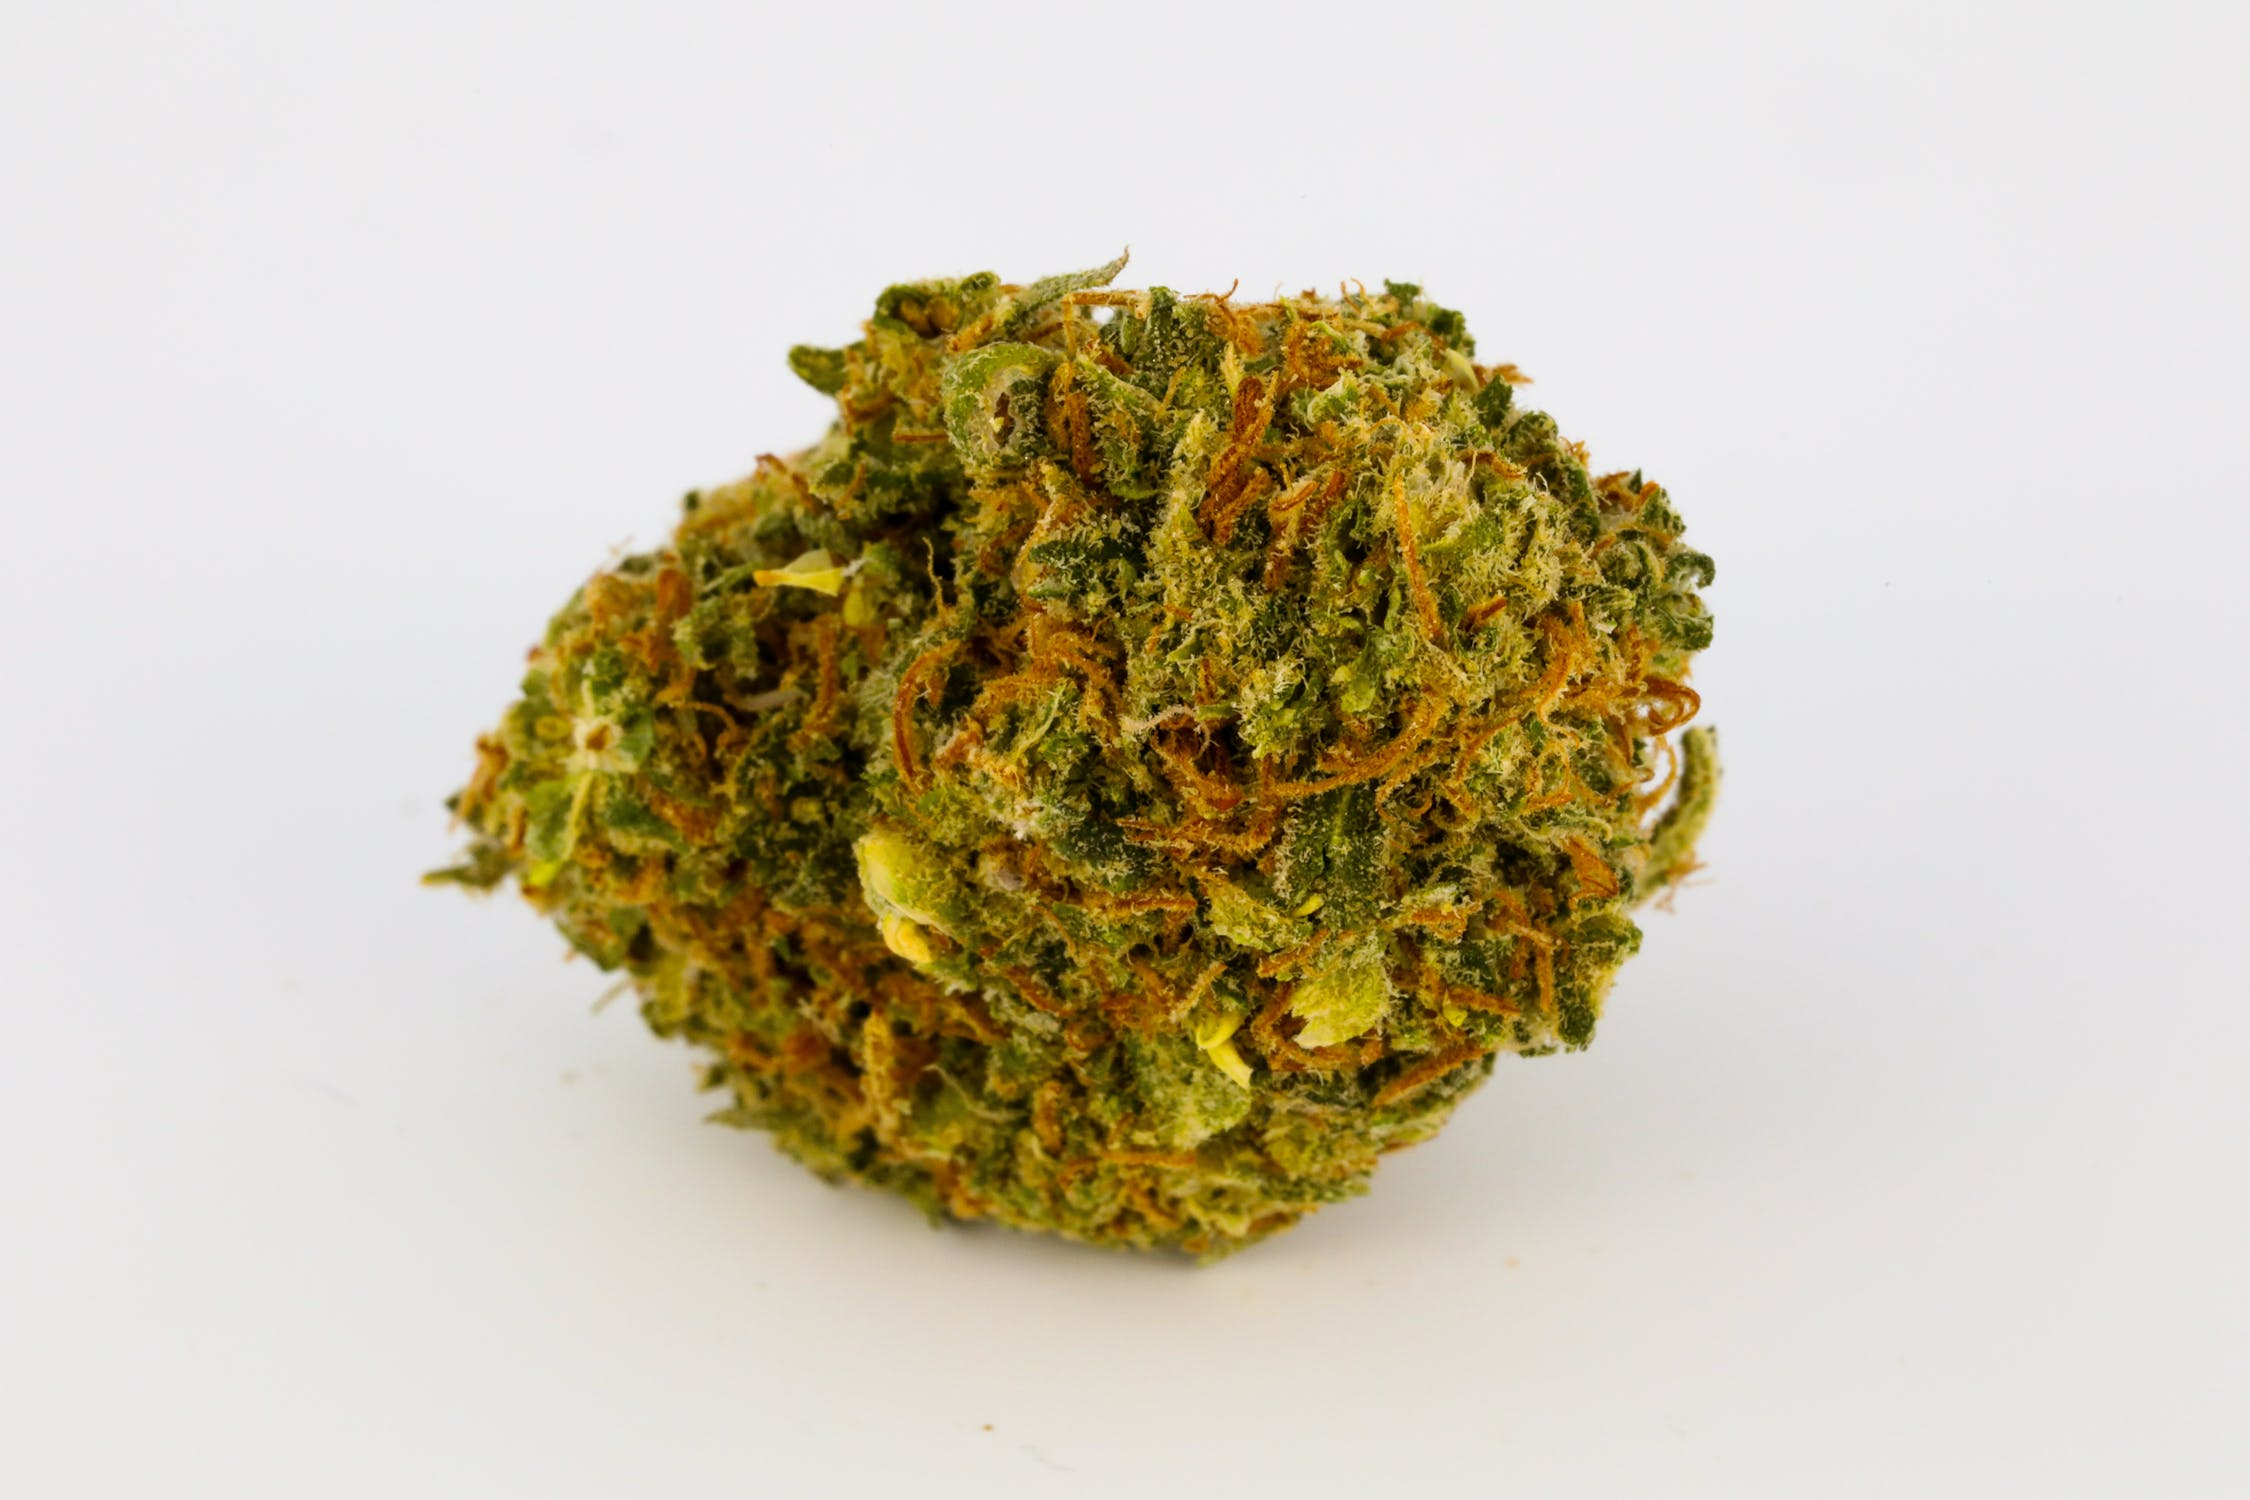 Snoop's Dream Weed; Snoop's Dream Cannabis Strain; Snoop's Dream Hybrid Marijuana Strain